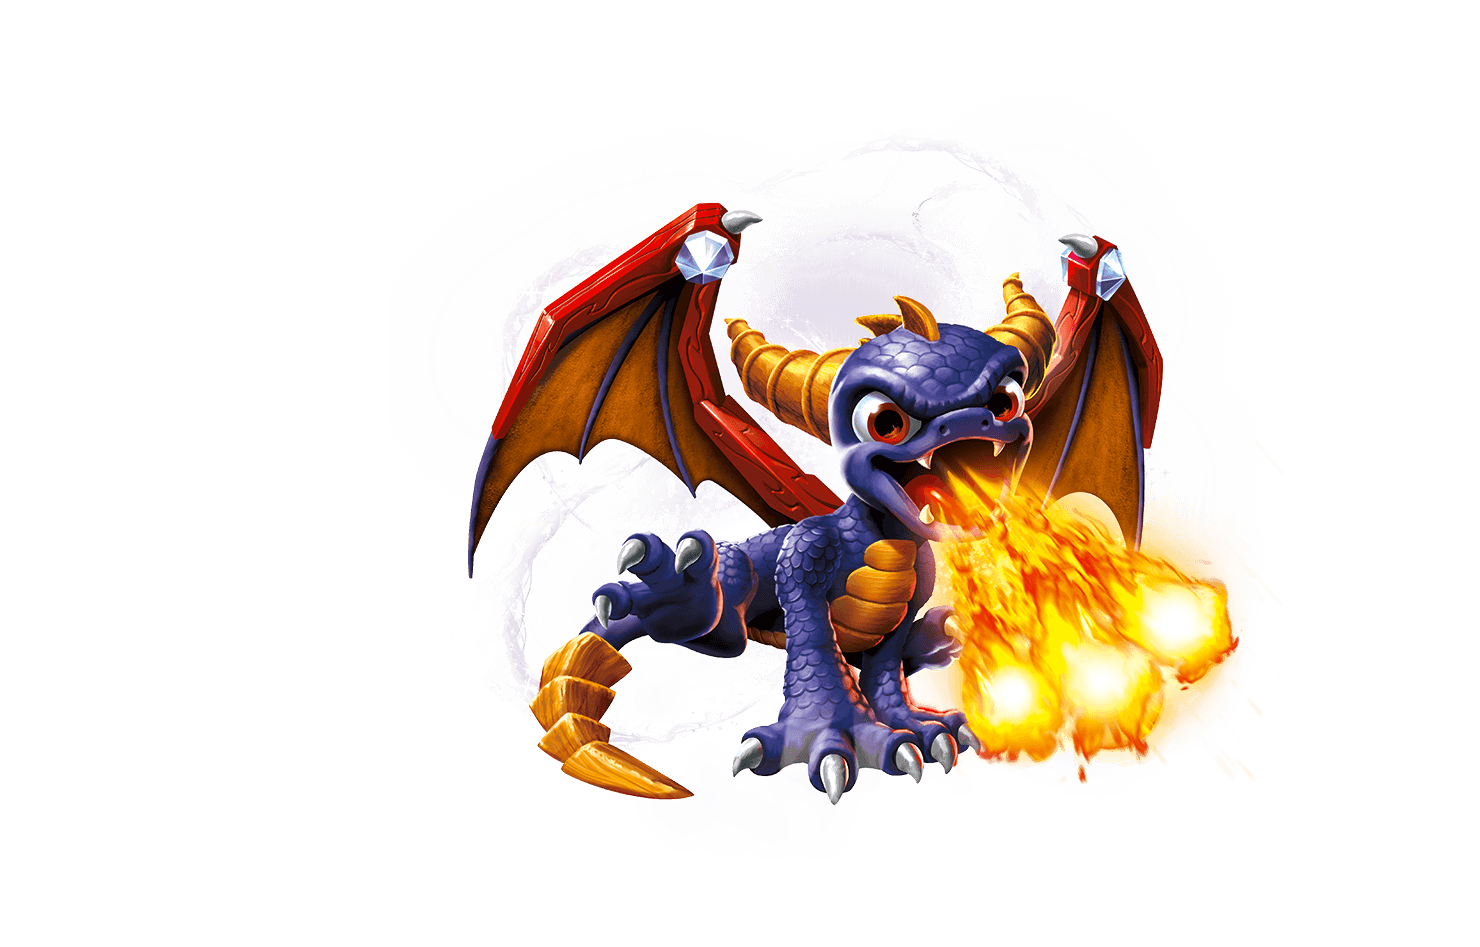 Spyro The Dragon Wallpaper And Background Image 1480x947